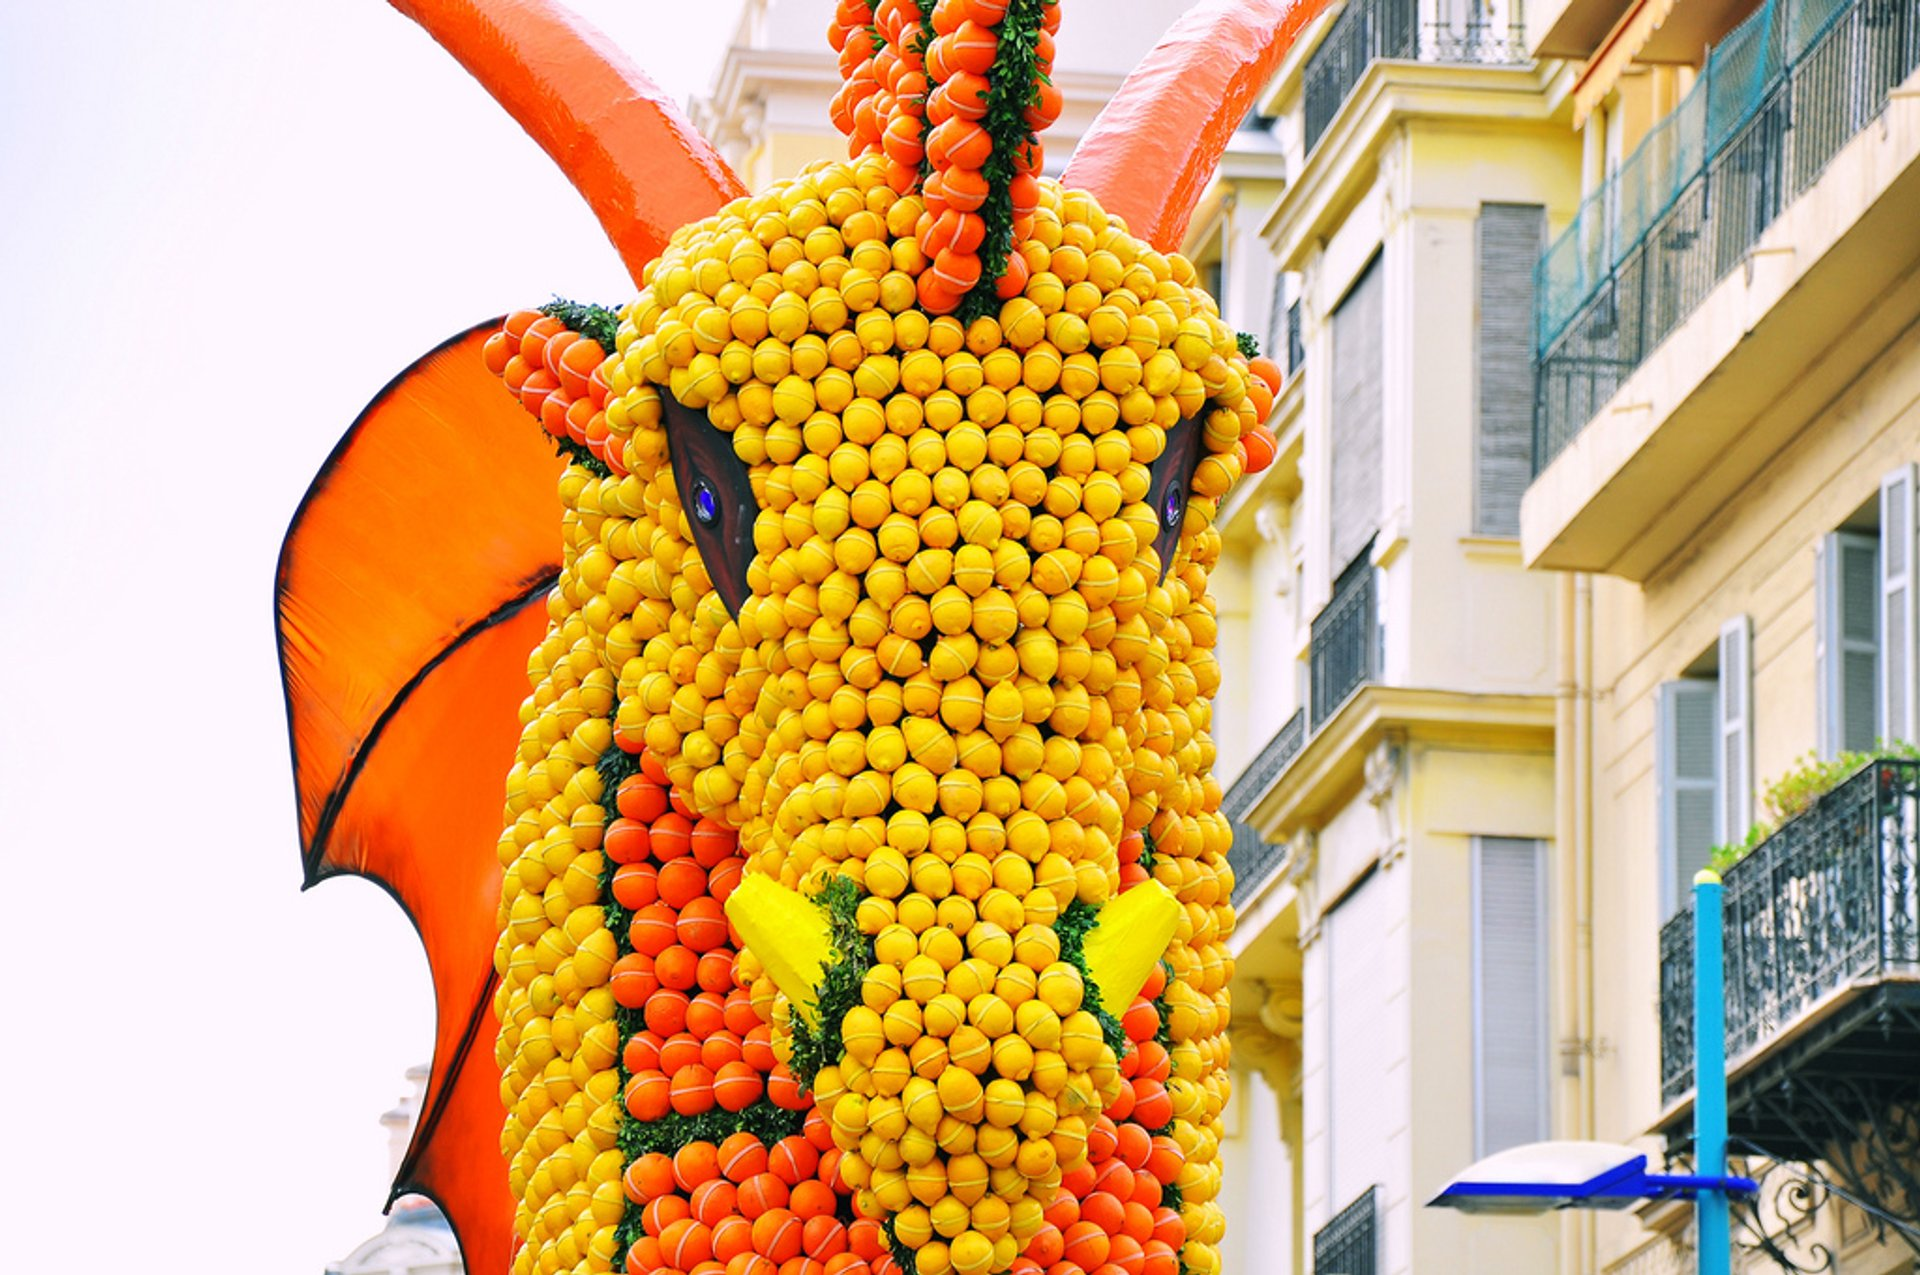 Fête du Citron (Menton Lemon Festival) in Provence & French Riviera - Best Season 2020